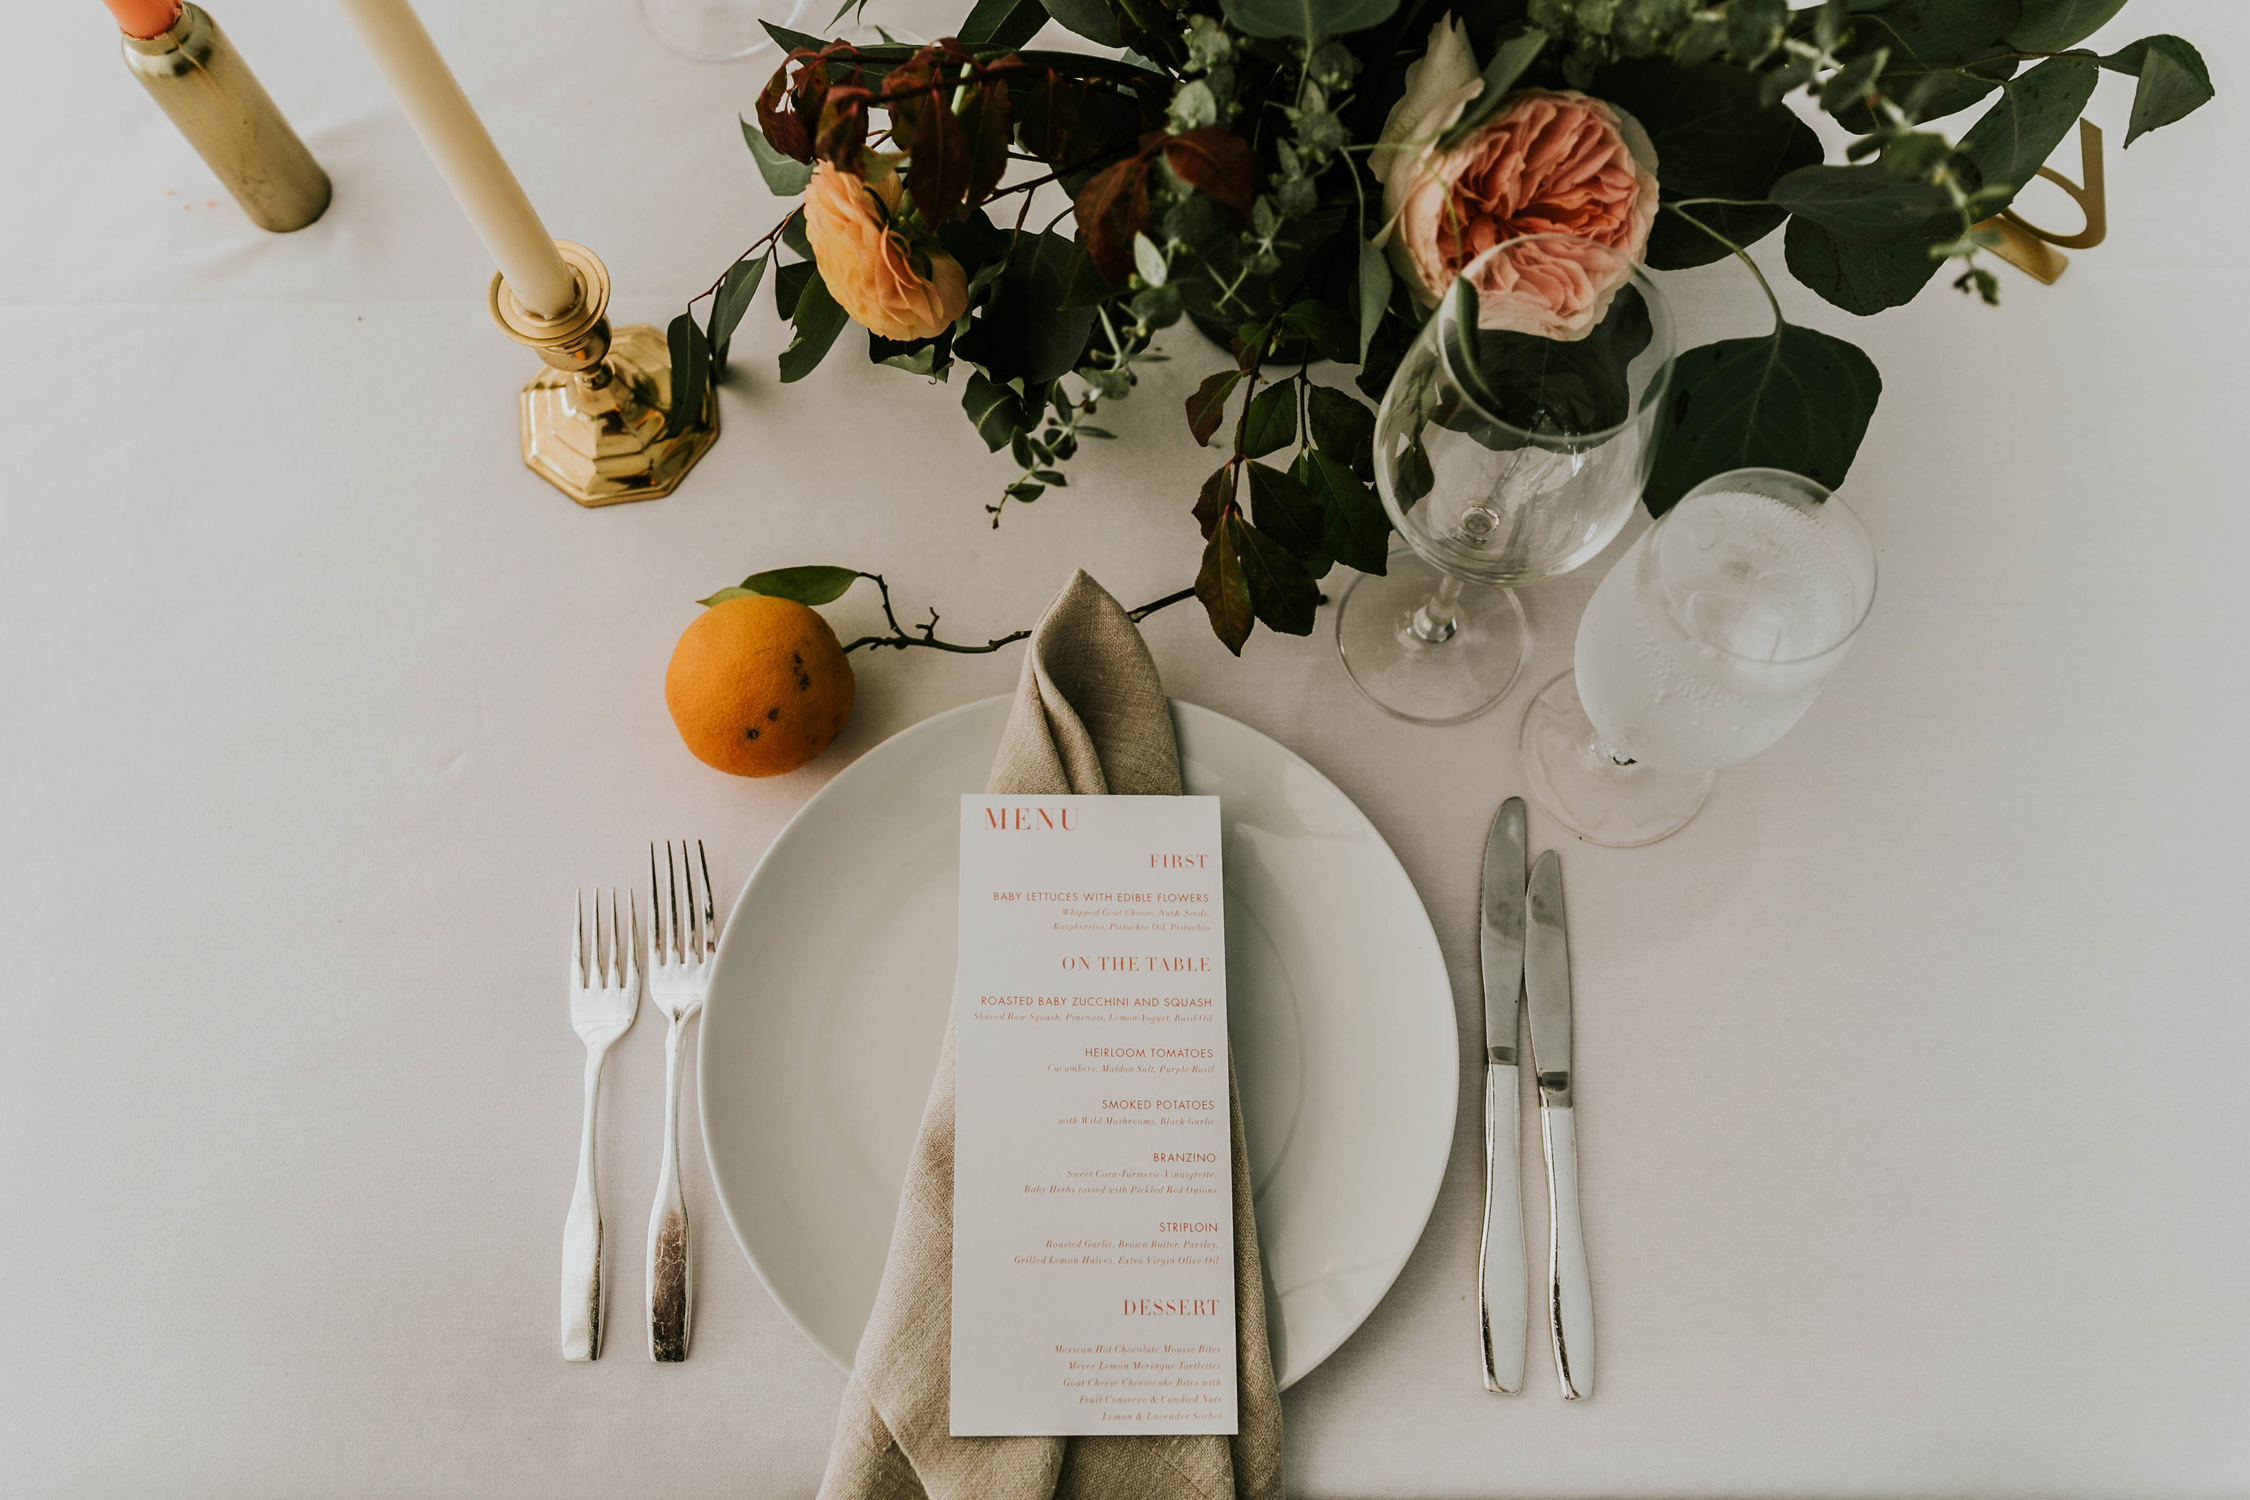 neutral reception place setting decorated with oranges